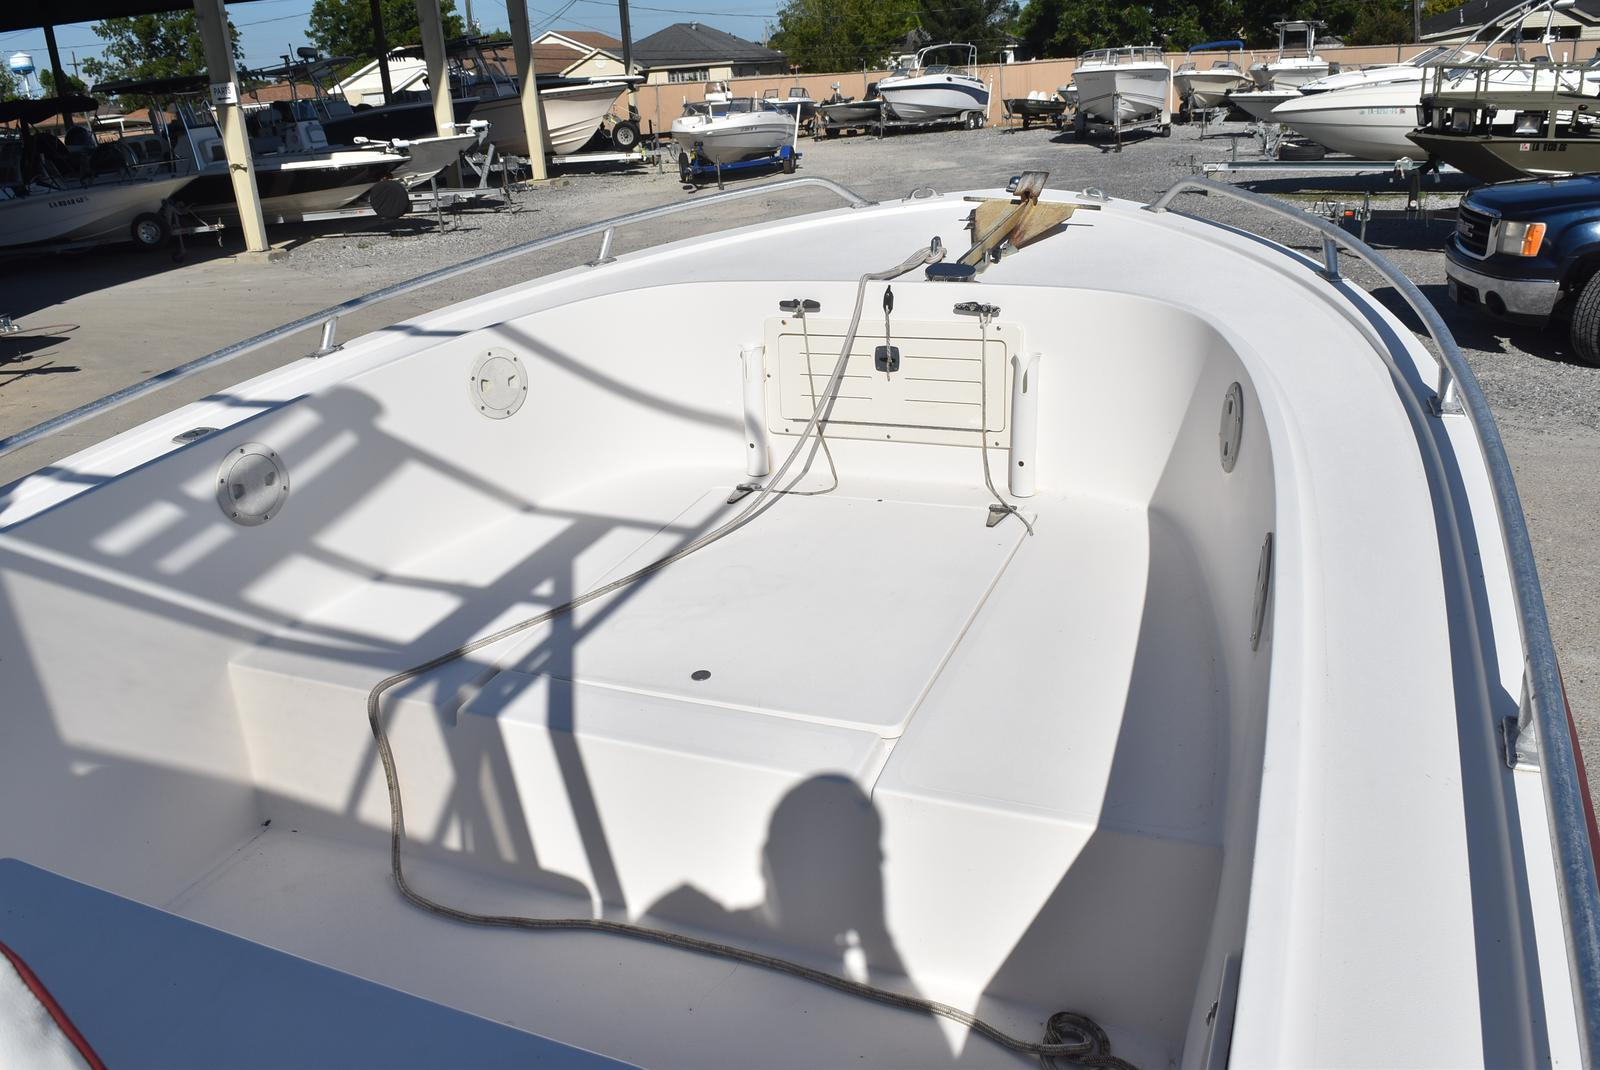 1996 Mako boat for sale, model of the boat is 22 Mako & Image # 136 of 390